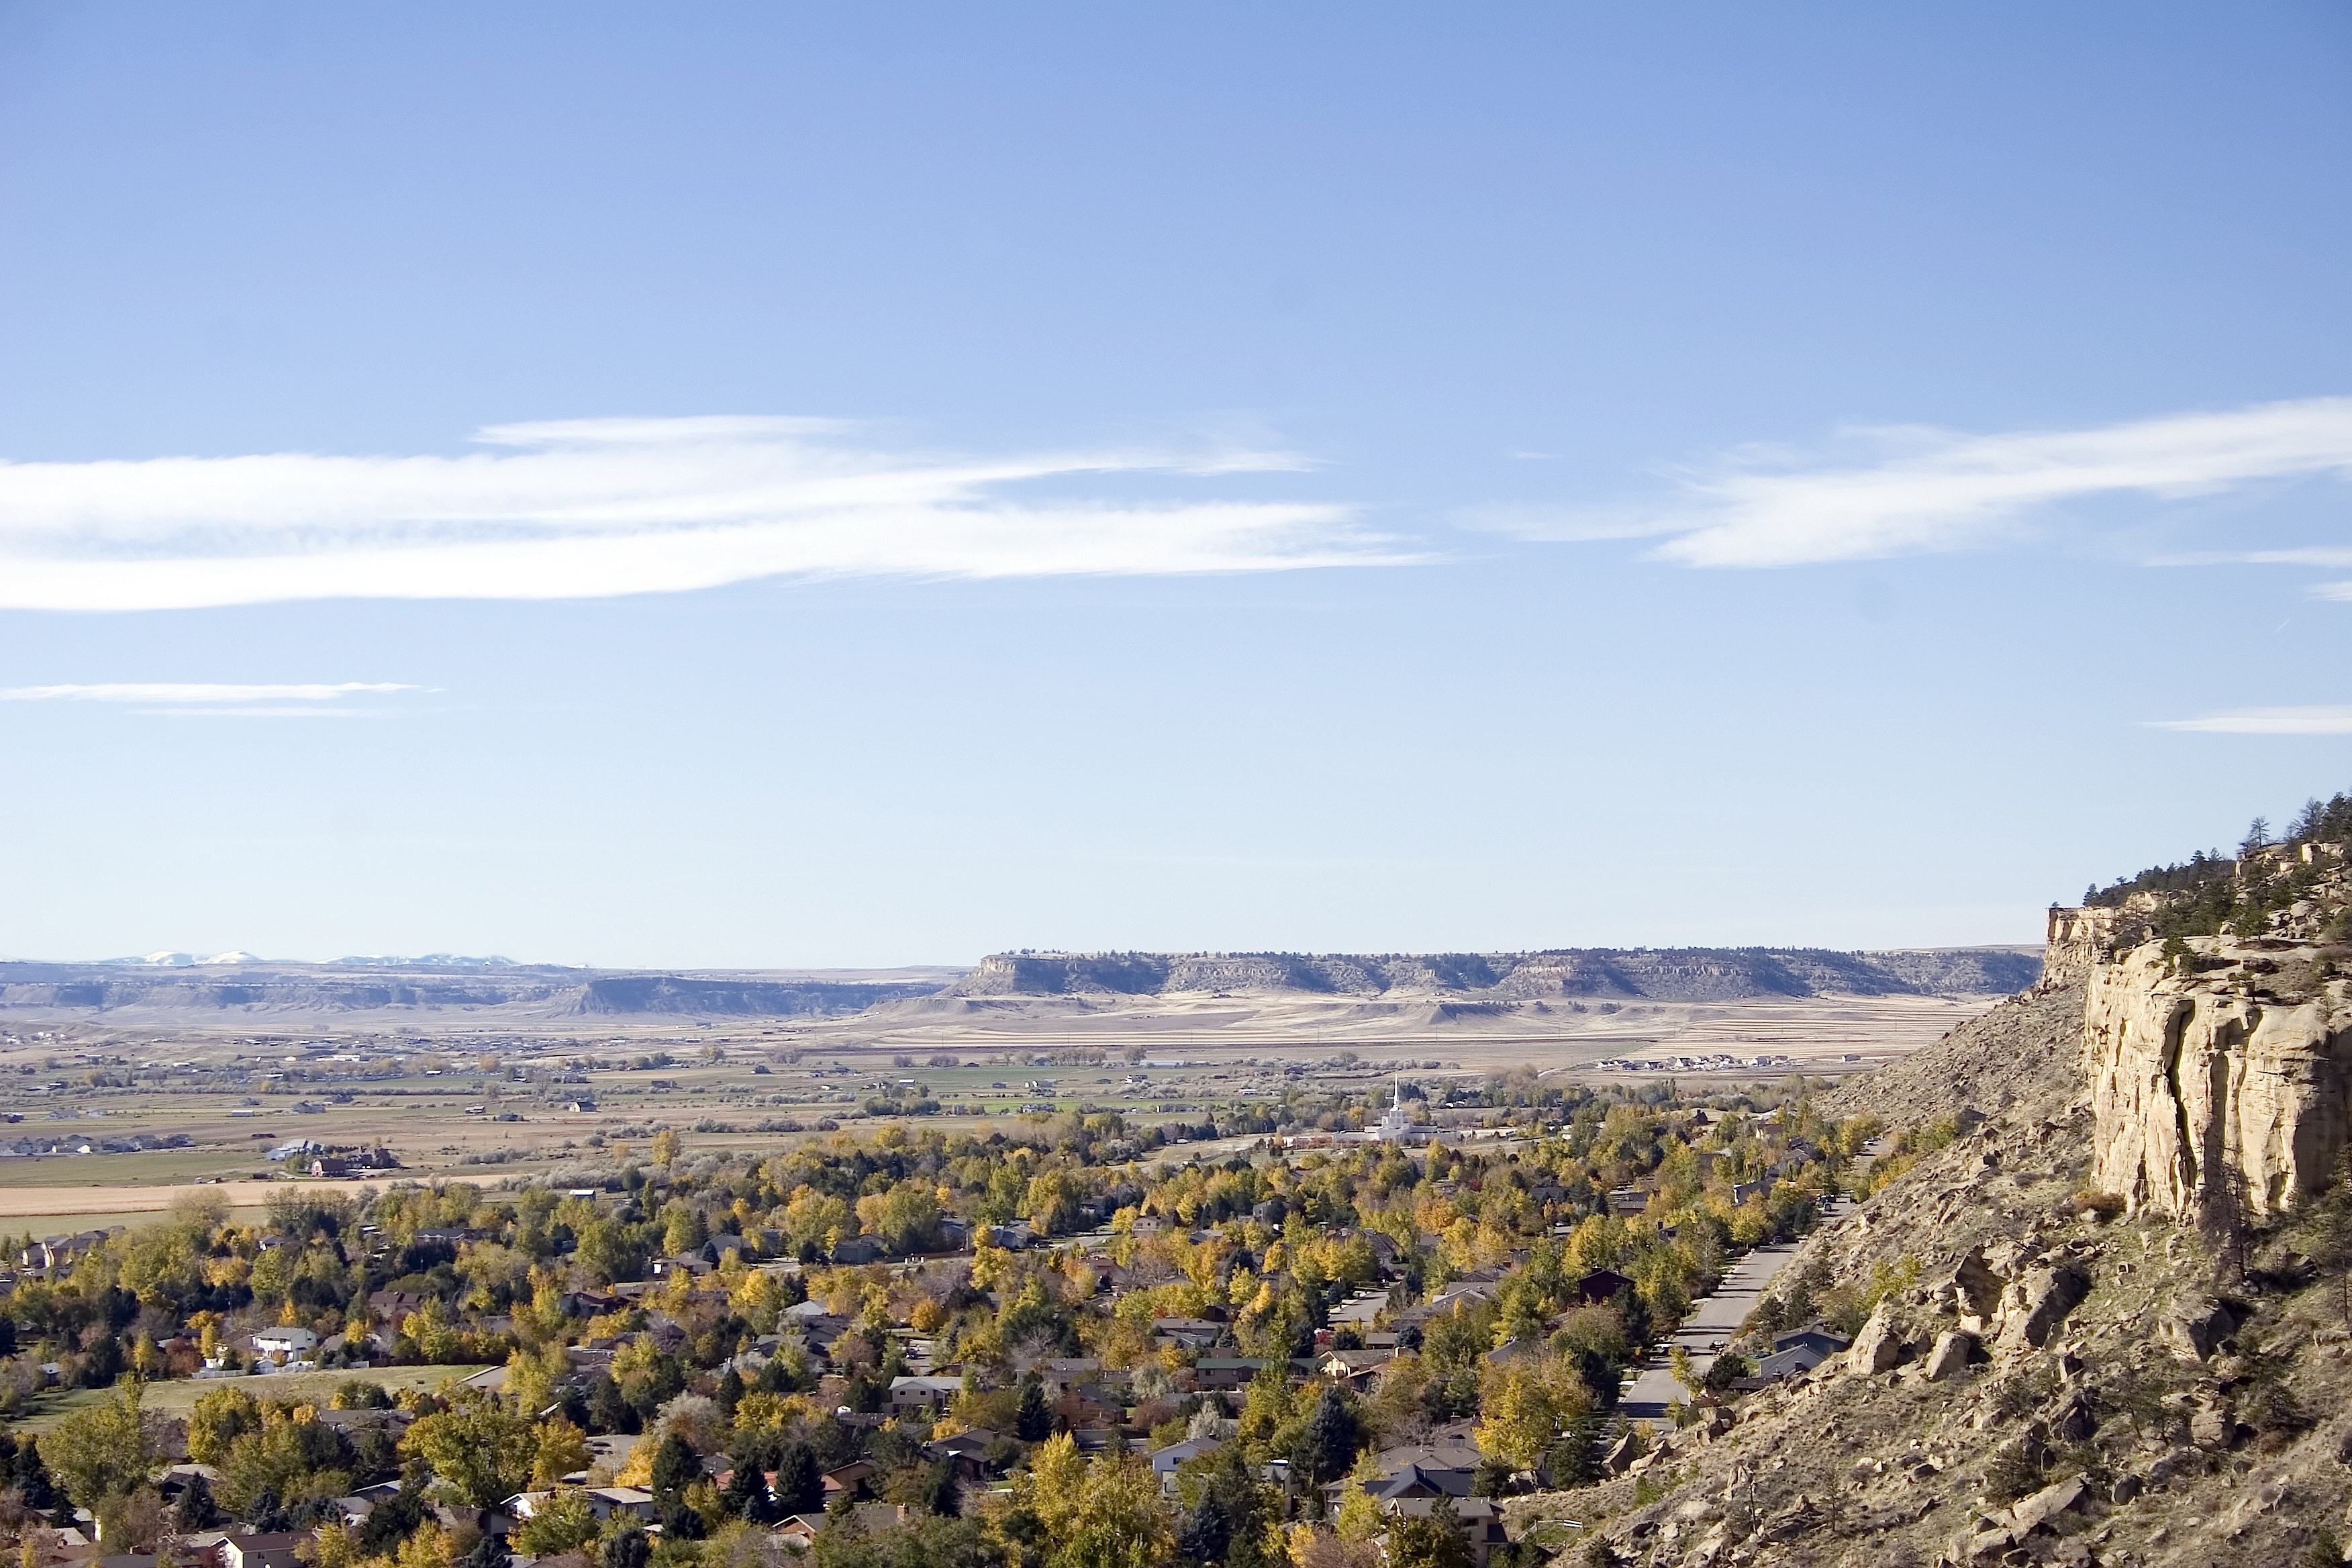 View of Billings from mountain.